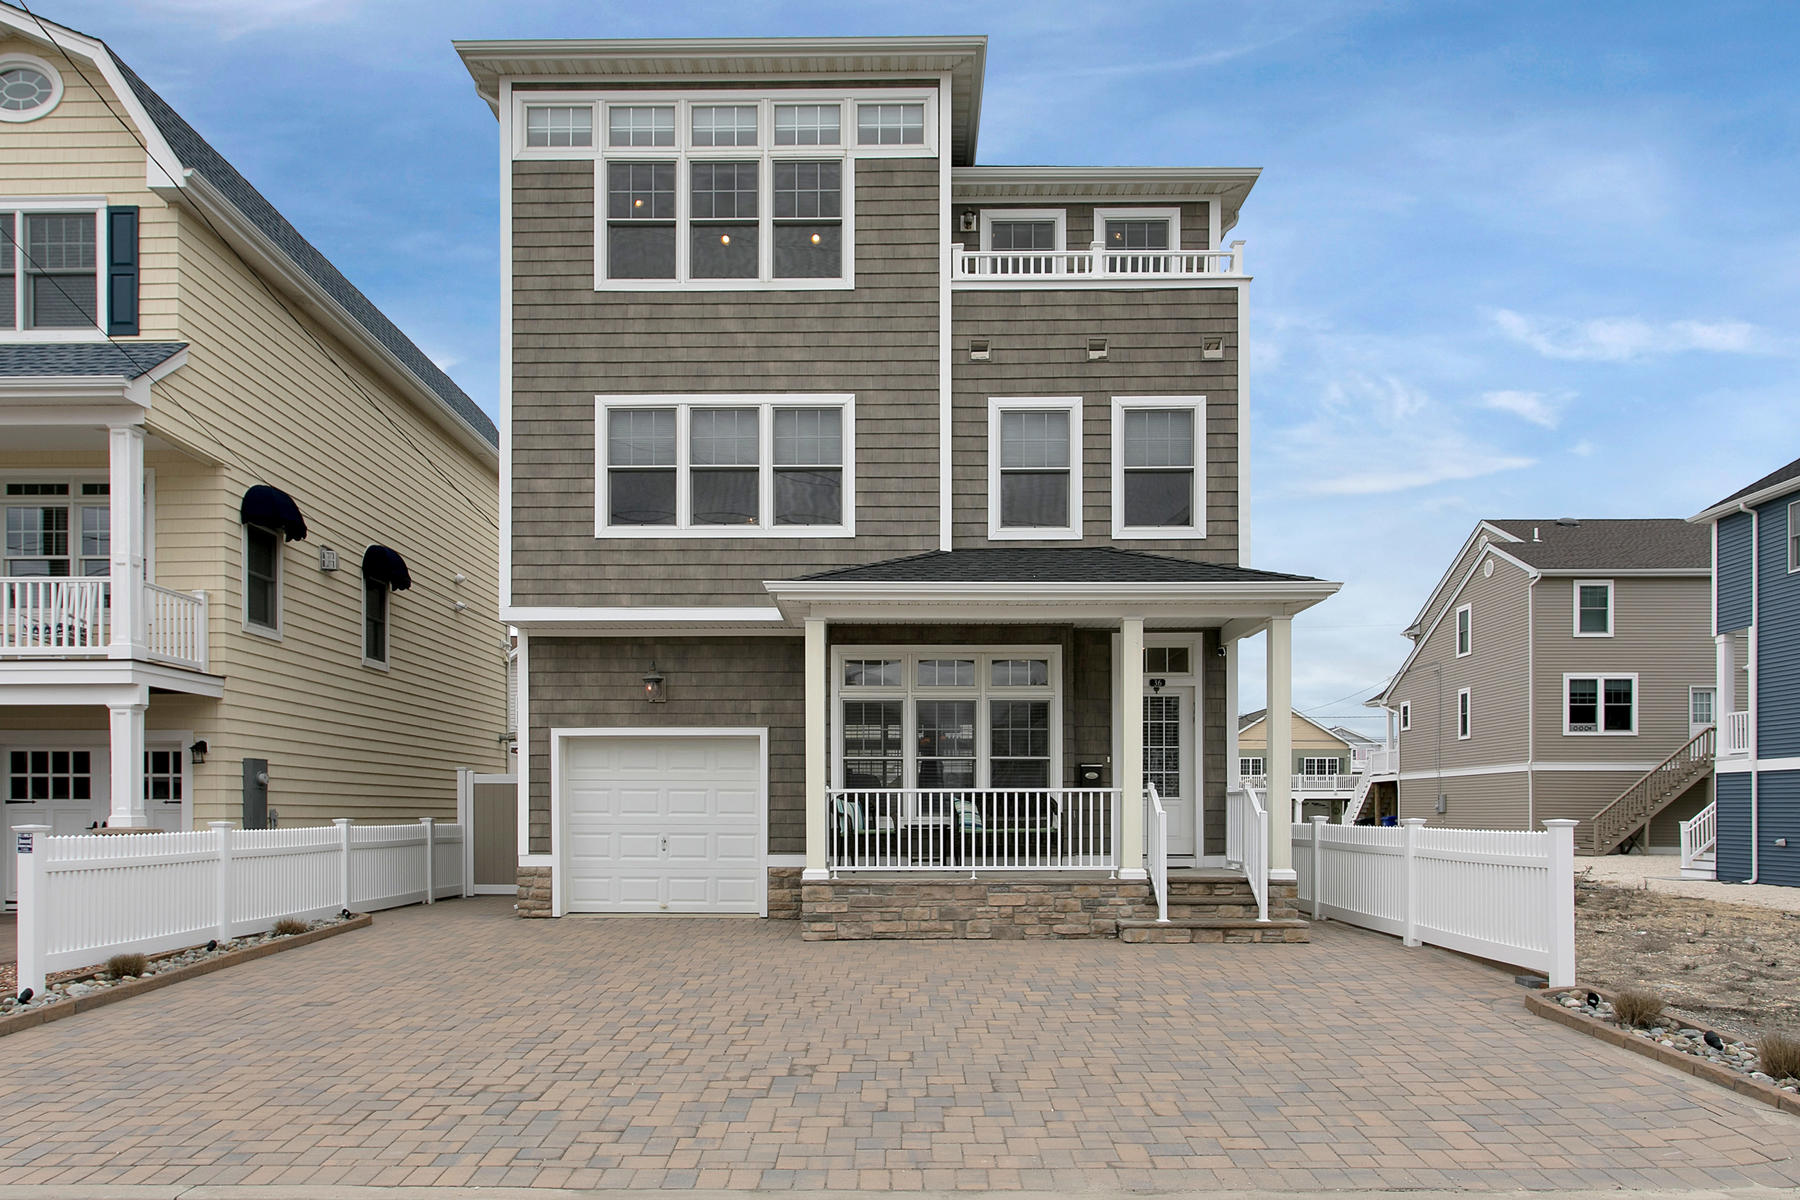 Vivienda unifamiliar por un Venta en Custom Built Beach Block Home 36 Fort Avenue Ortley Beach, Nueva Jersey 08751 Estados Unidos